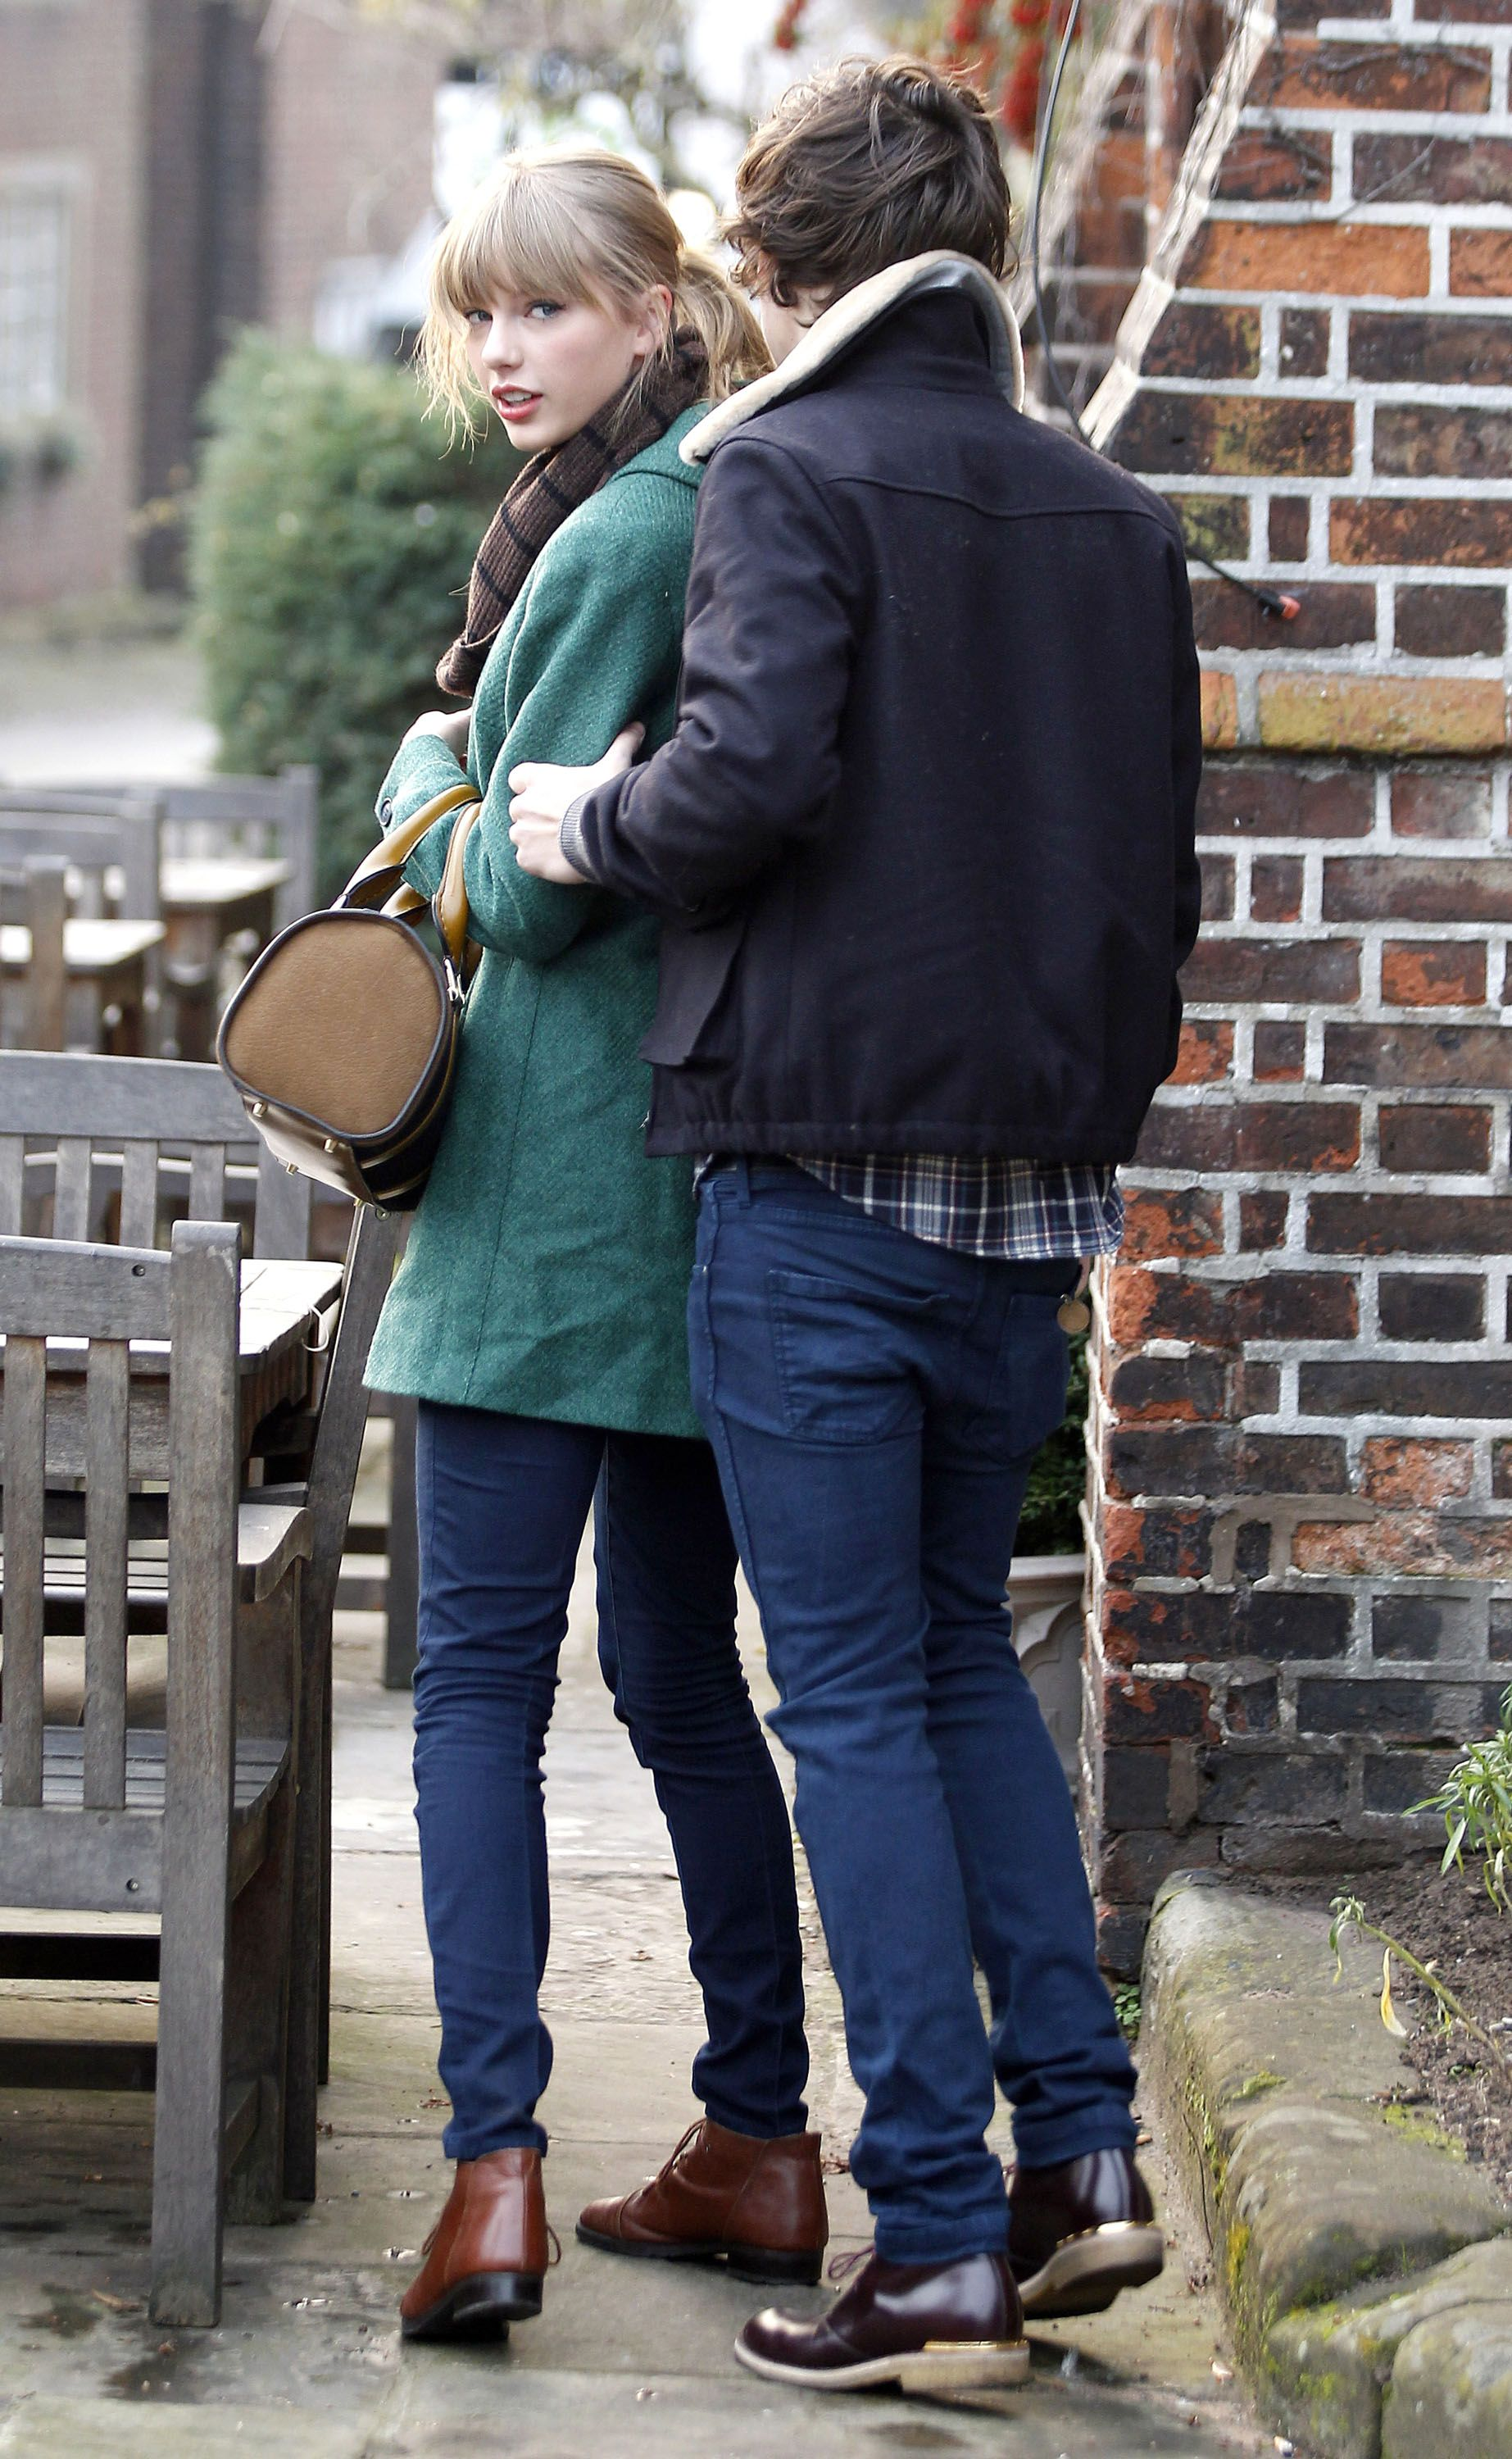 Taylor Swift And Harry Styles Celebrate Her 23rd With Chinese Food And Pda Harry Styles Photos Of Taylor Swift Harry Styles Pictures